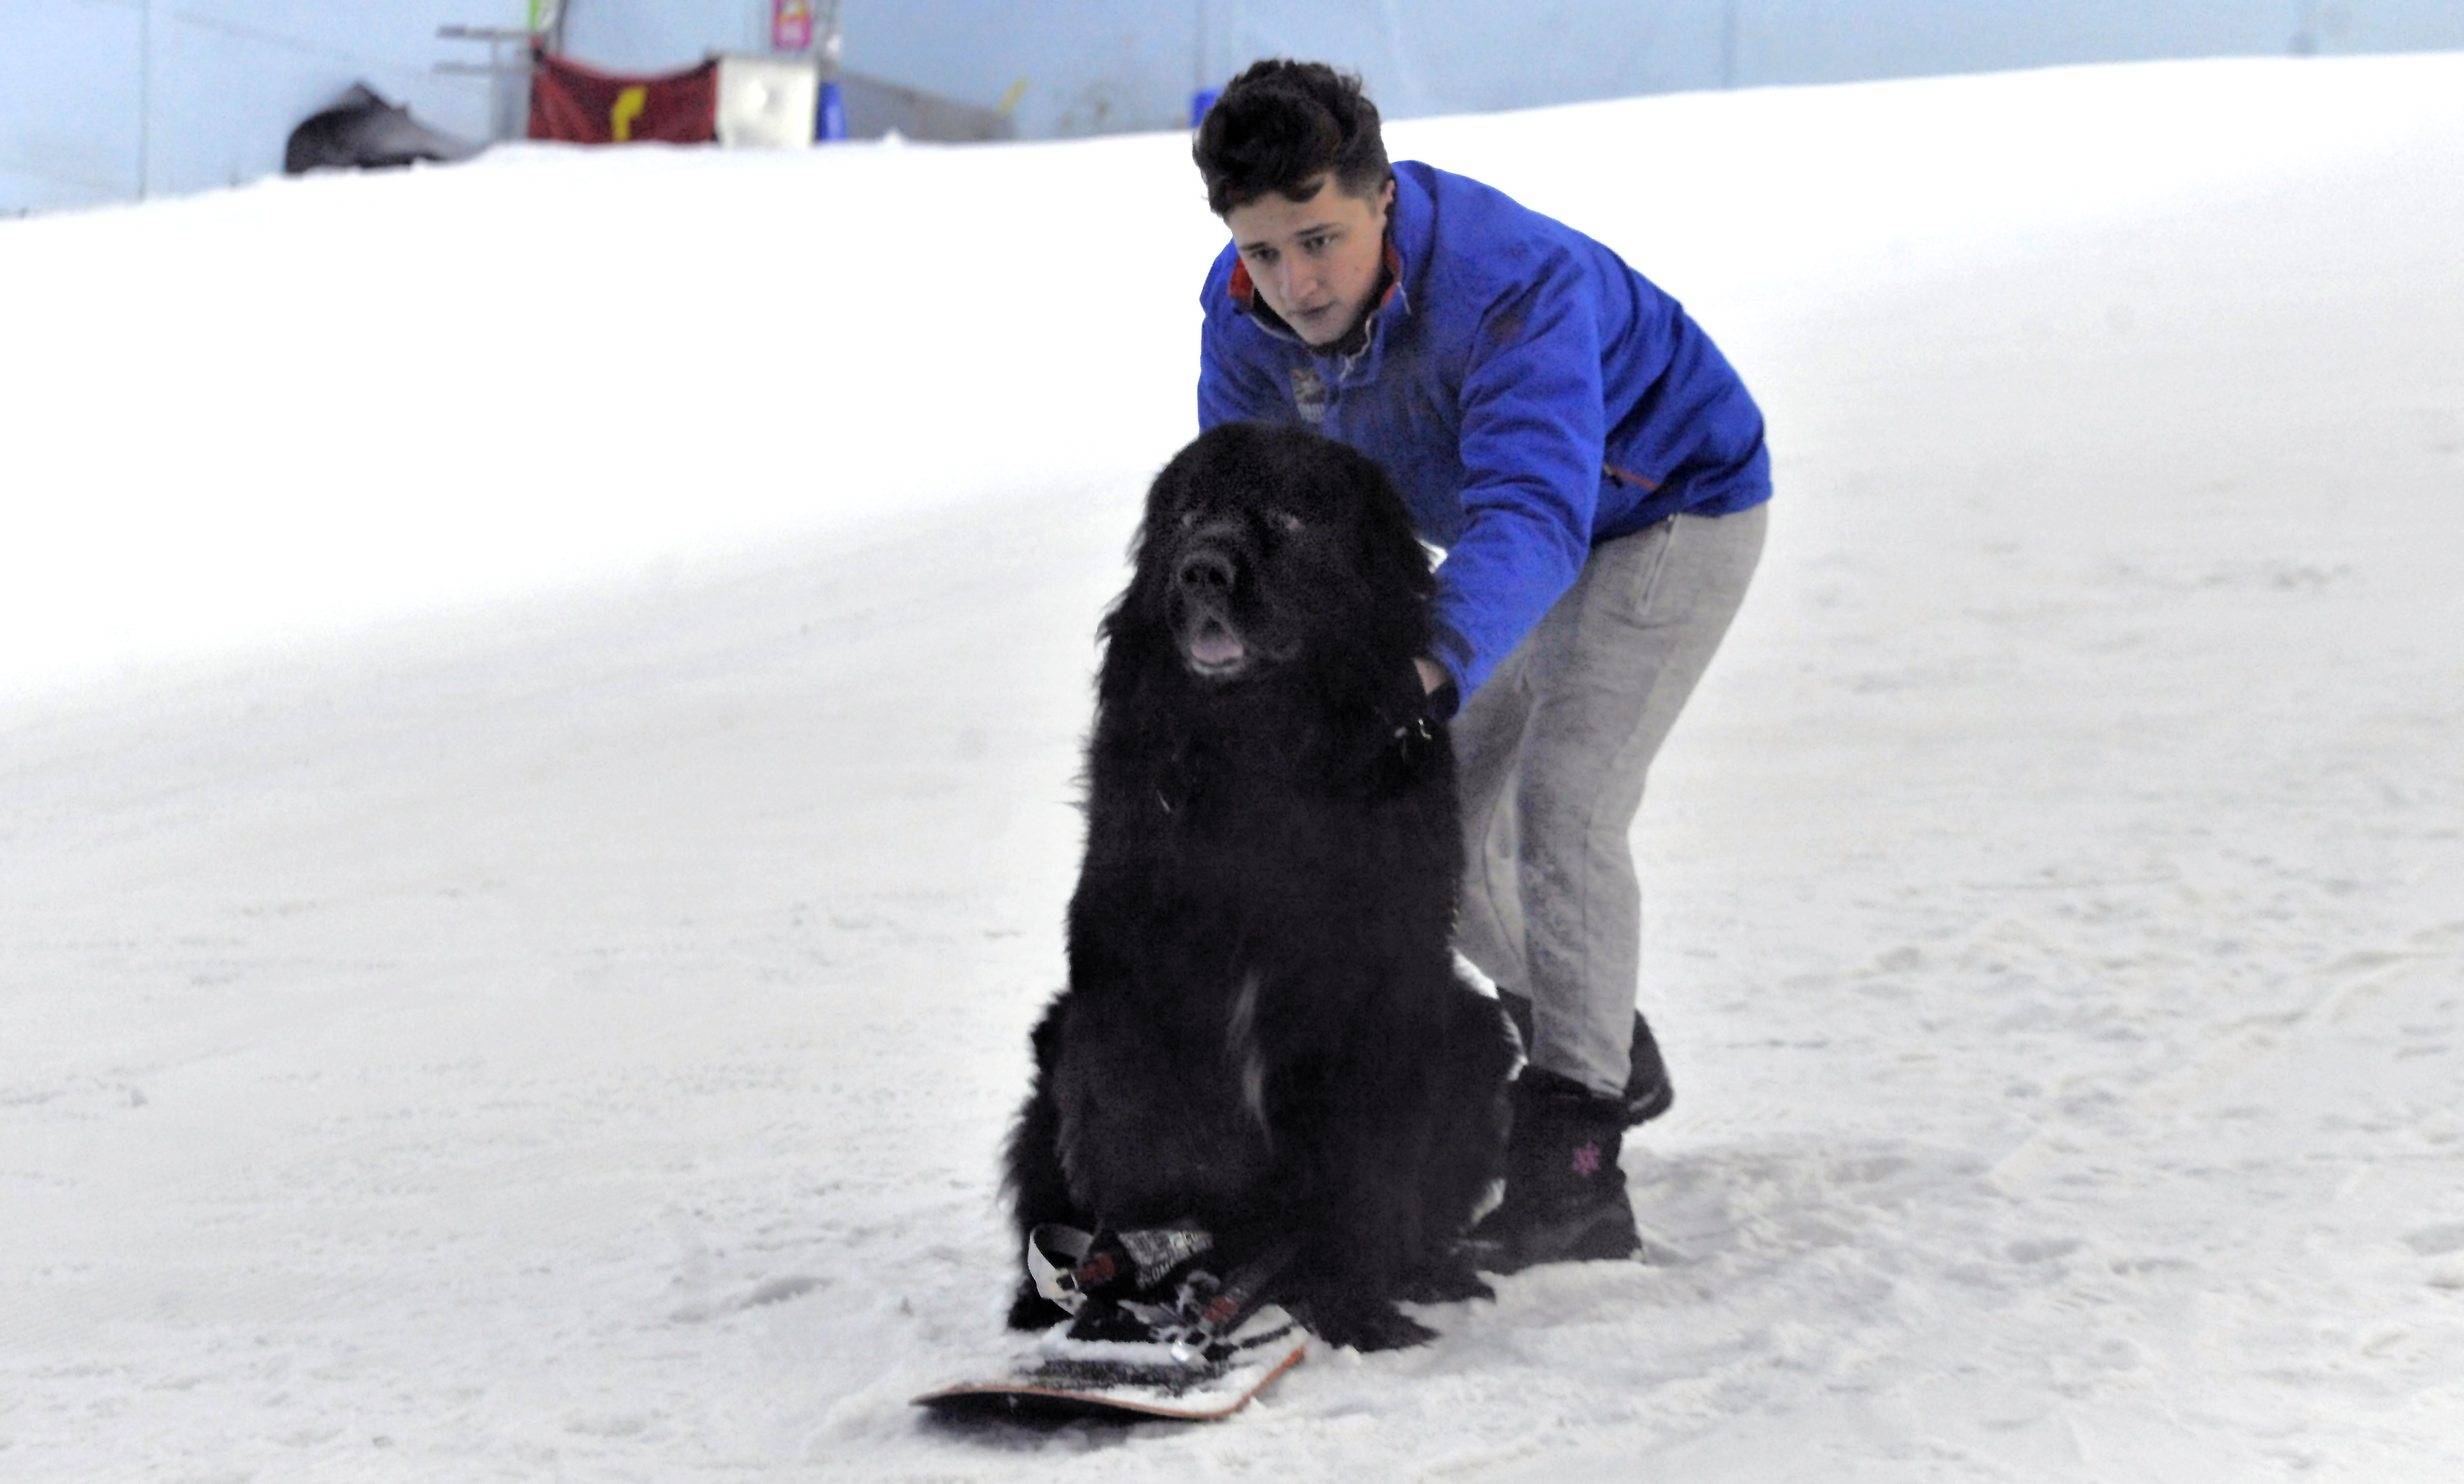 Buddy the Newfoundland tries his paw at snowboarding.